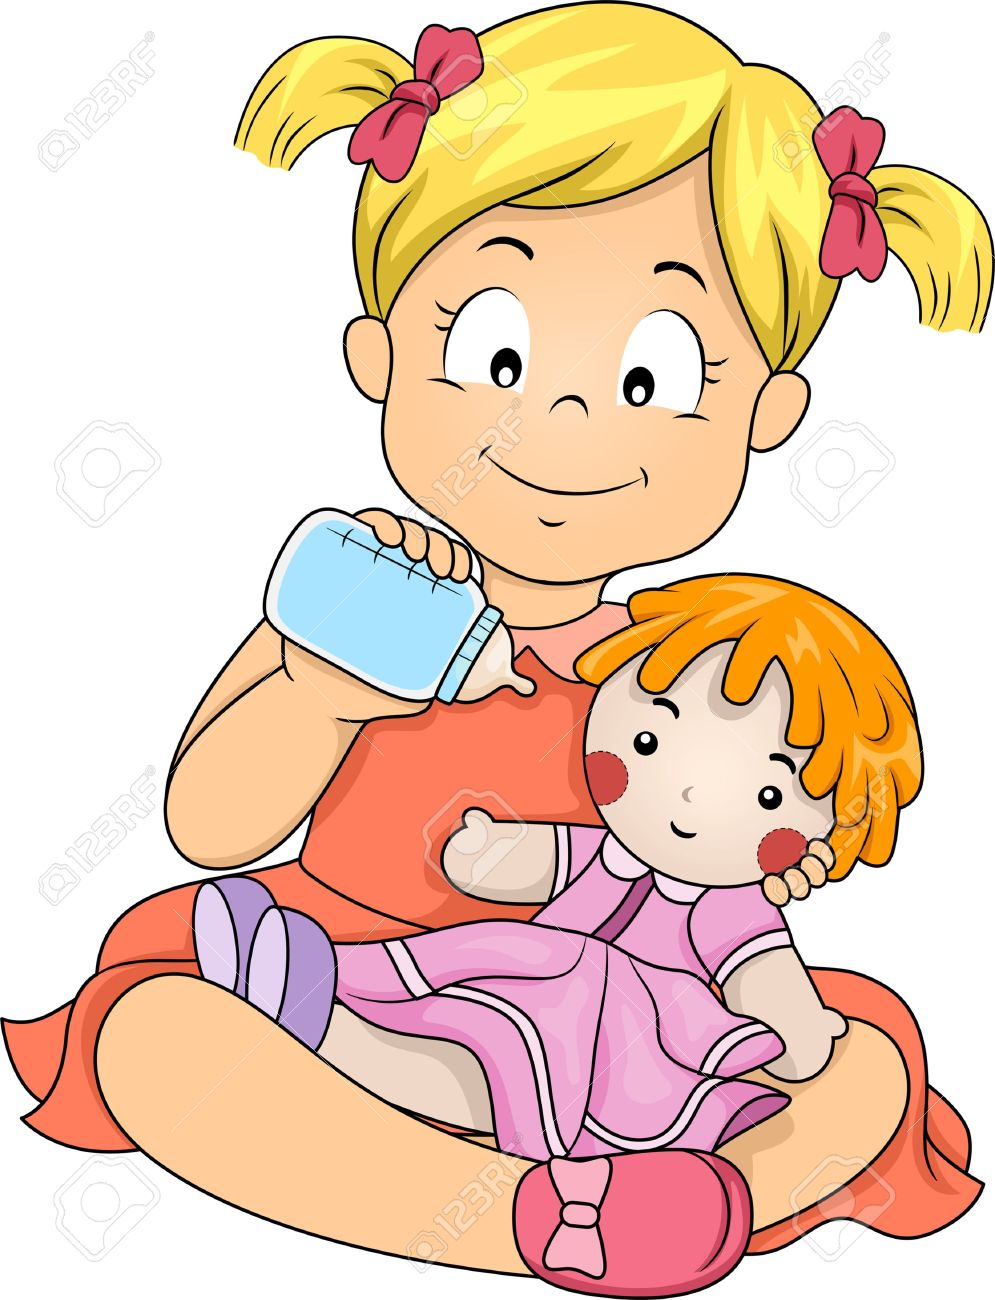 baby doll: Illustration of a Little Girl Feeding Her Doll with Milk